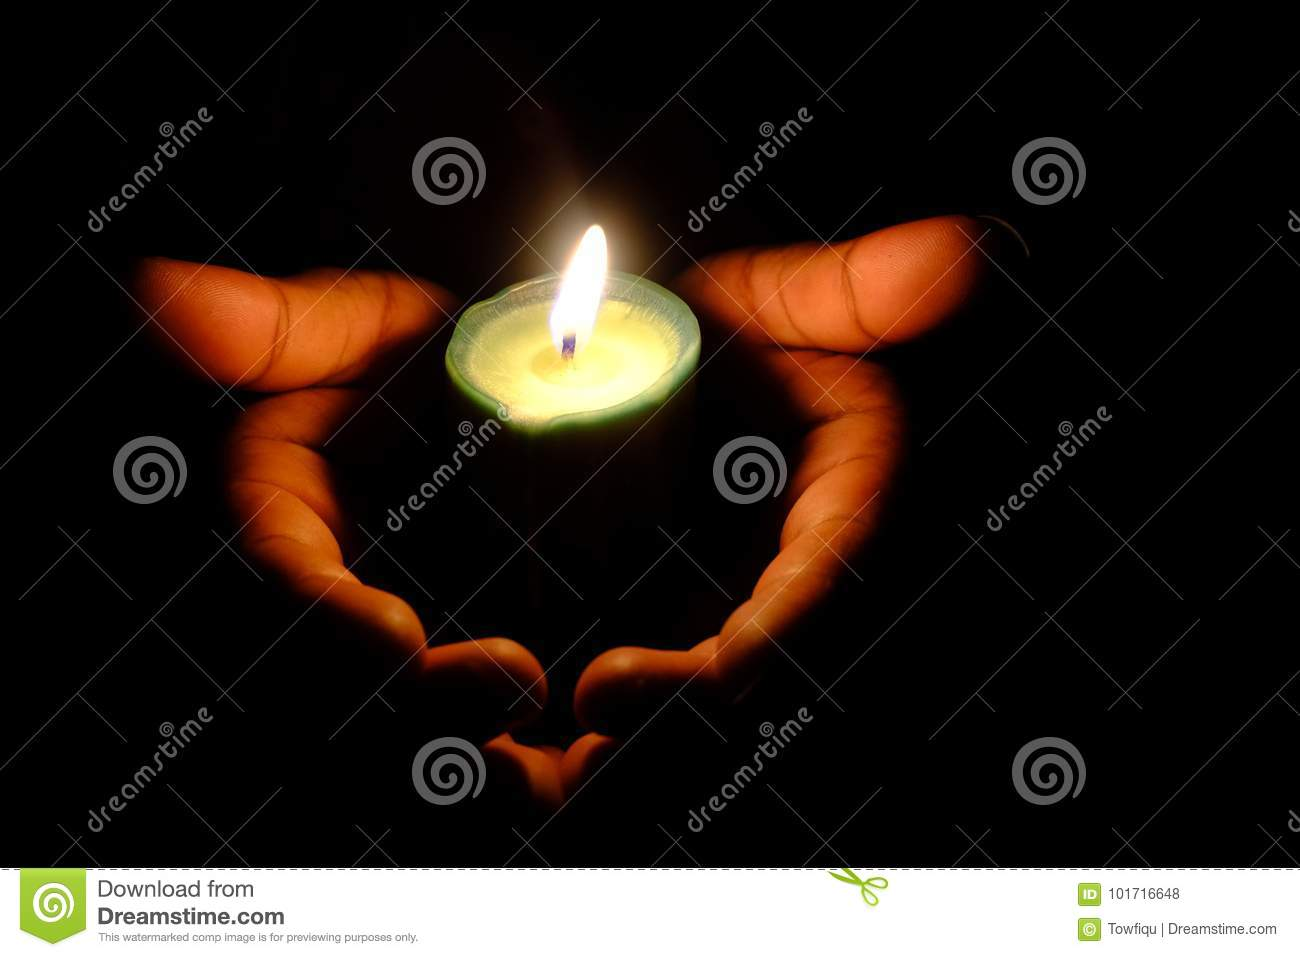 Hands Holding A Burning Candle In Dark Like A Heart Stock Photo ... for Holding Candle In The Dark  150ifm